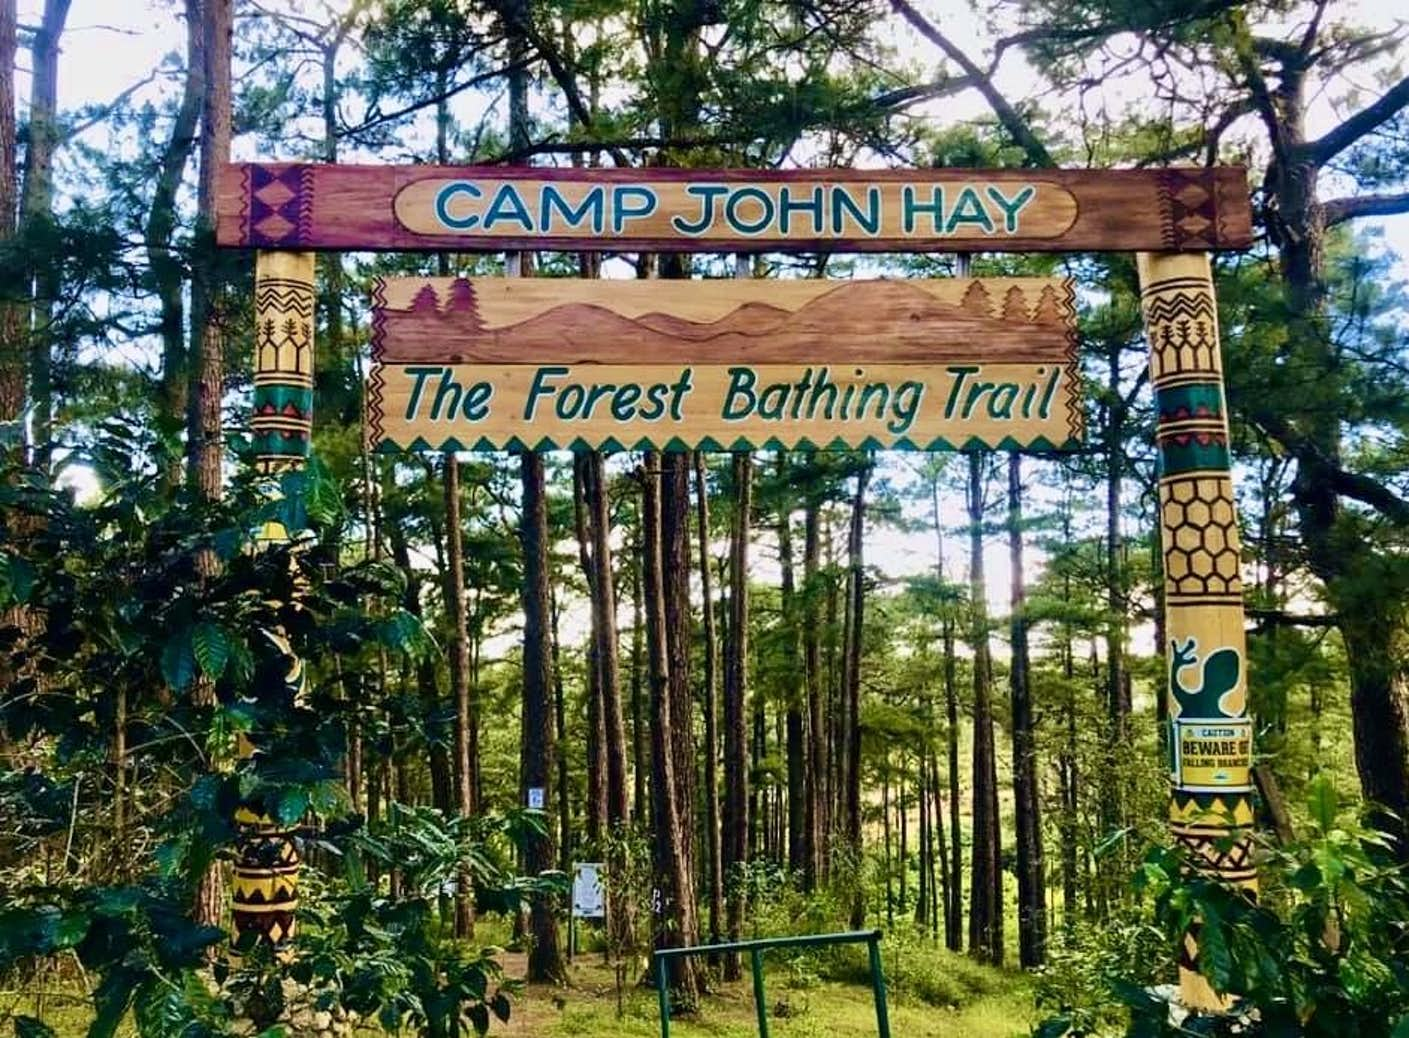 Welcome signage of the forest bathing trail in Camp John Hay